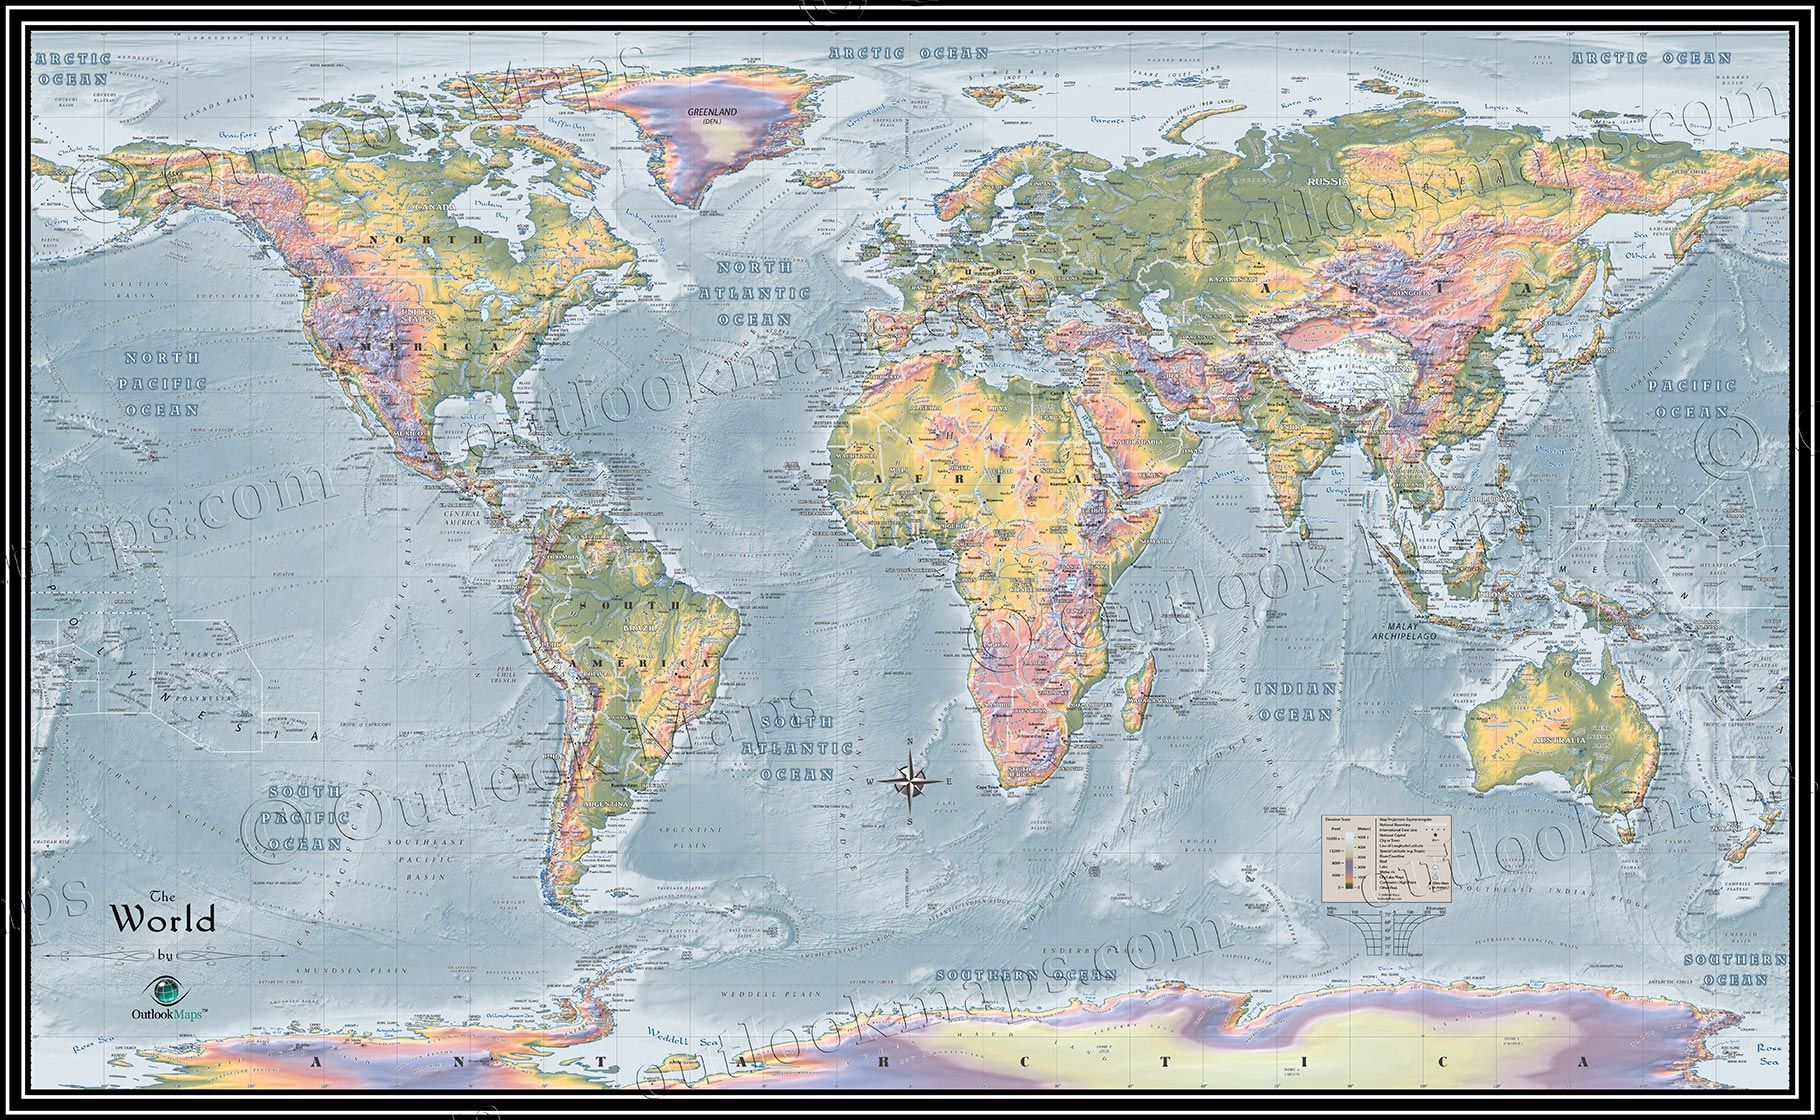 Topographical World Map Showing Elevation And Natural Features Colorful Map Wall Maps Tintin